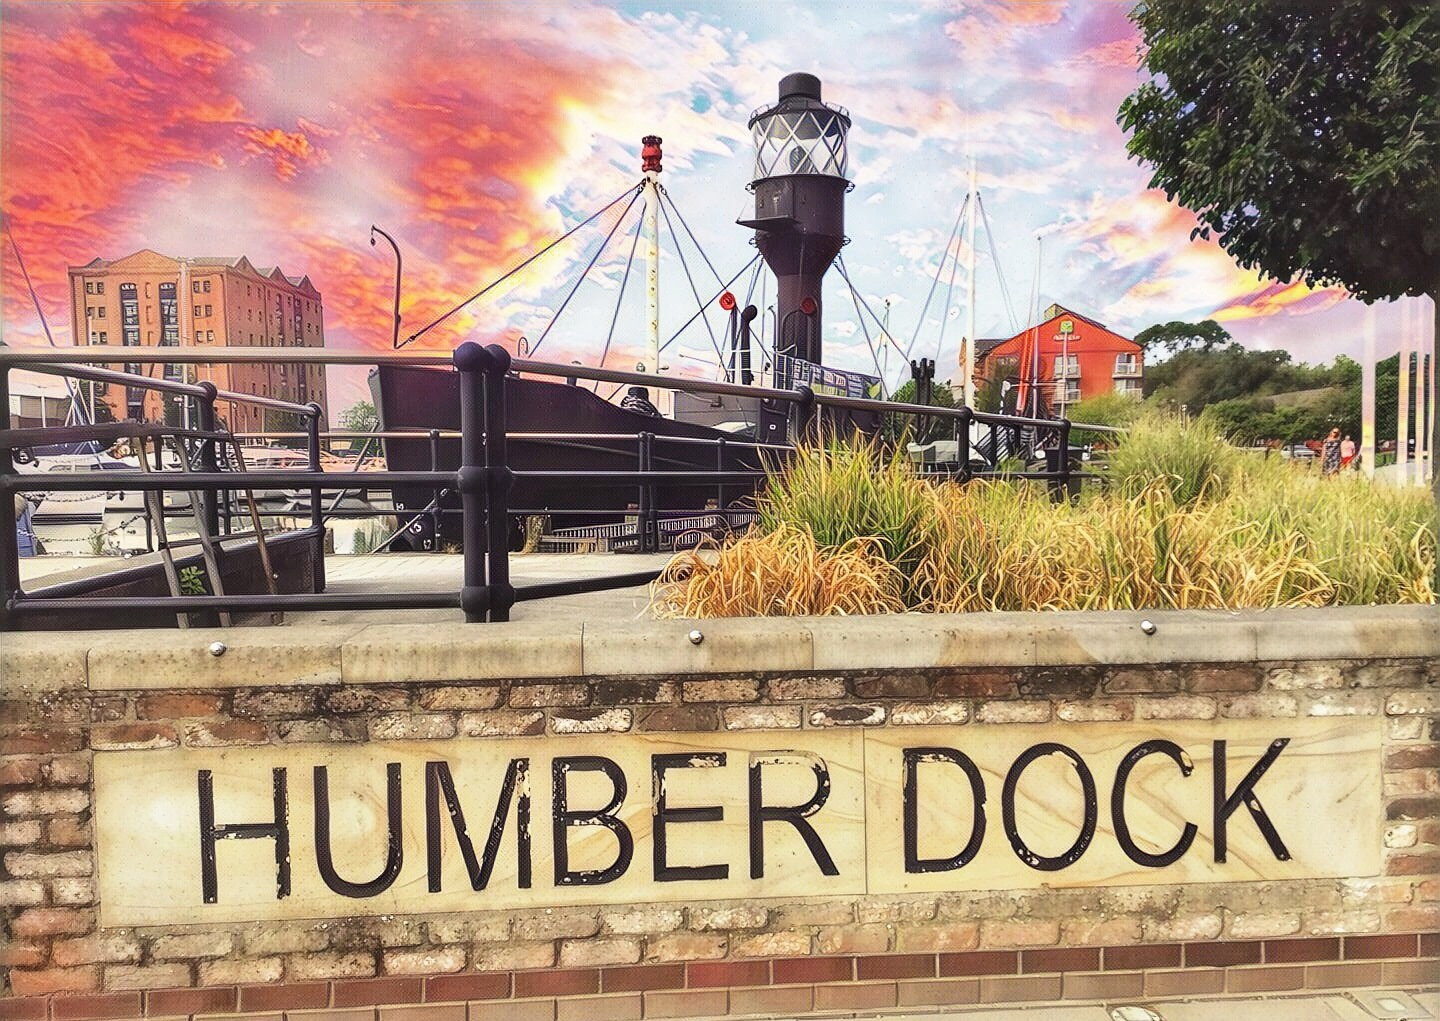 Humber dock  by uniqueimagesofhull